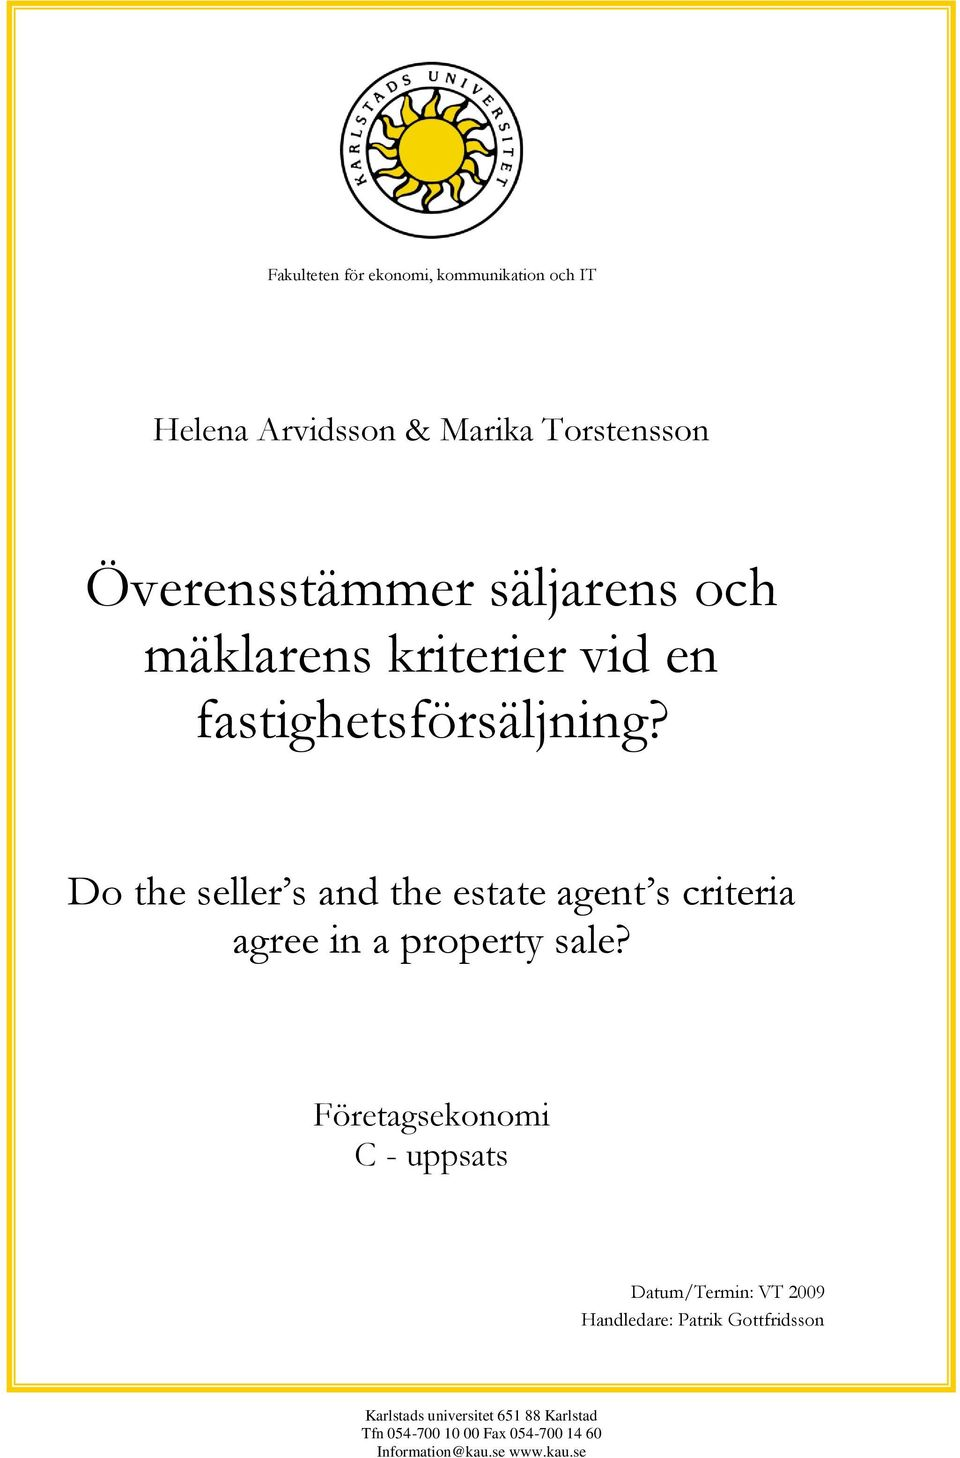 Do the seller s and the estate agent s criteria agree in a property sale?